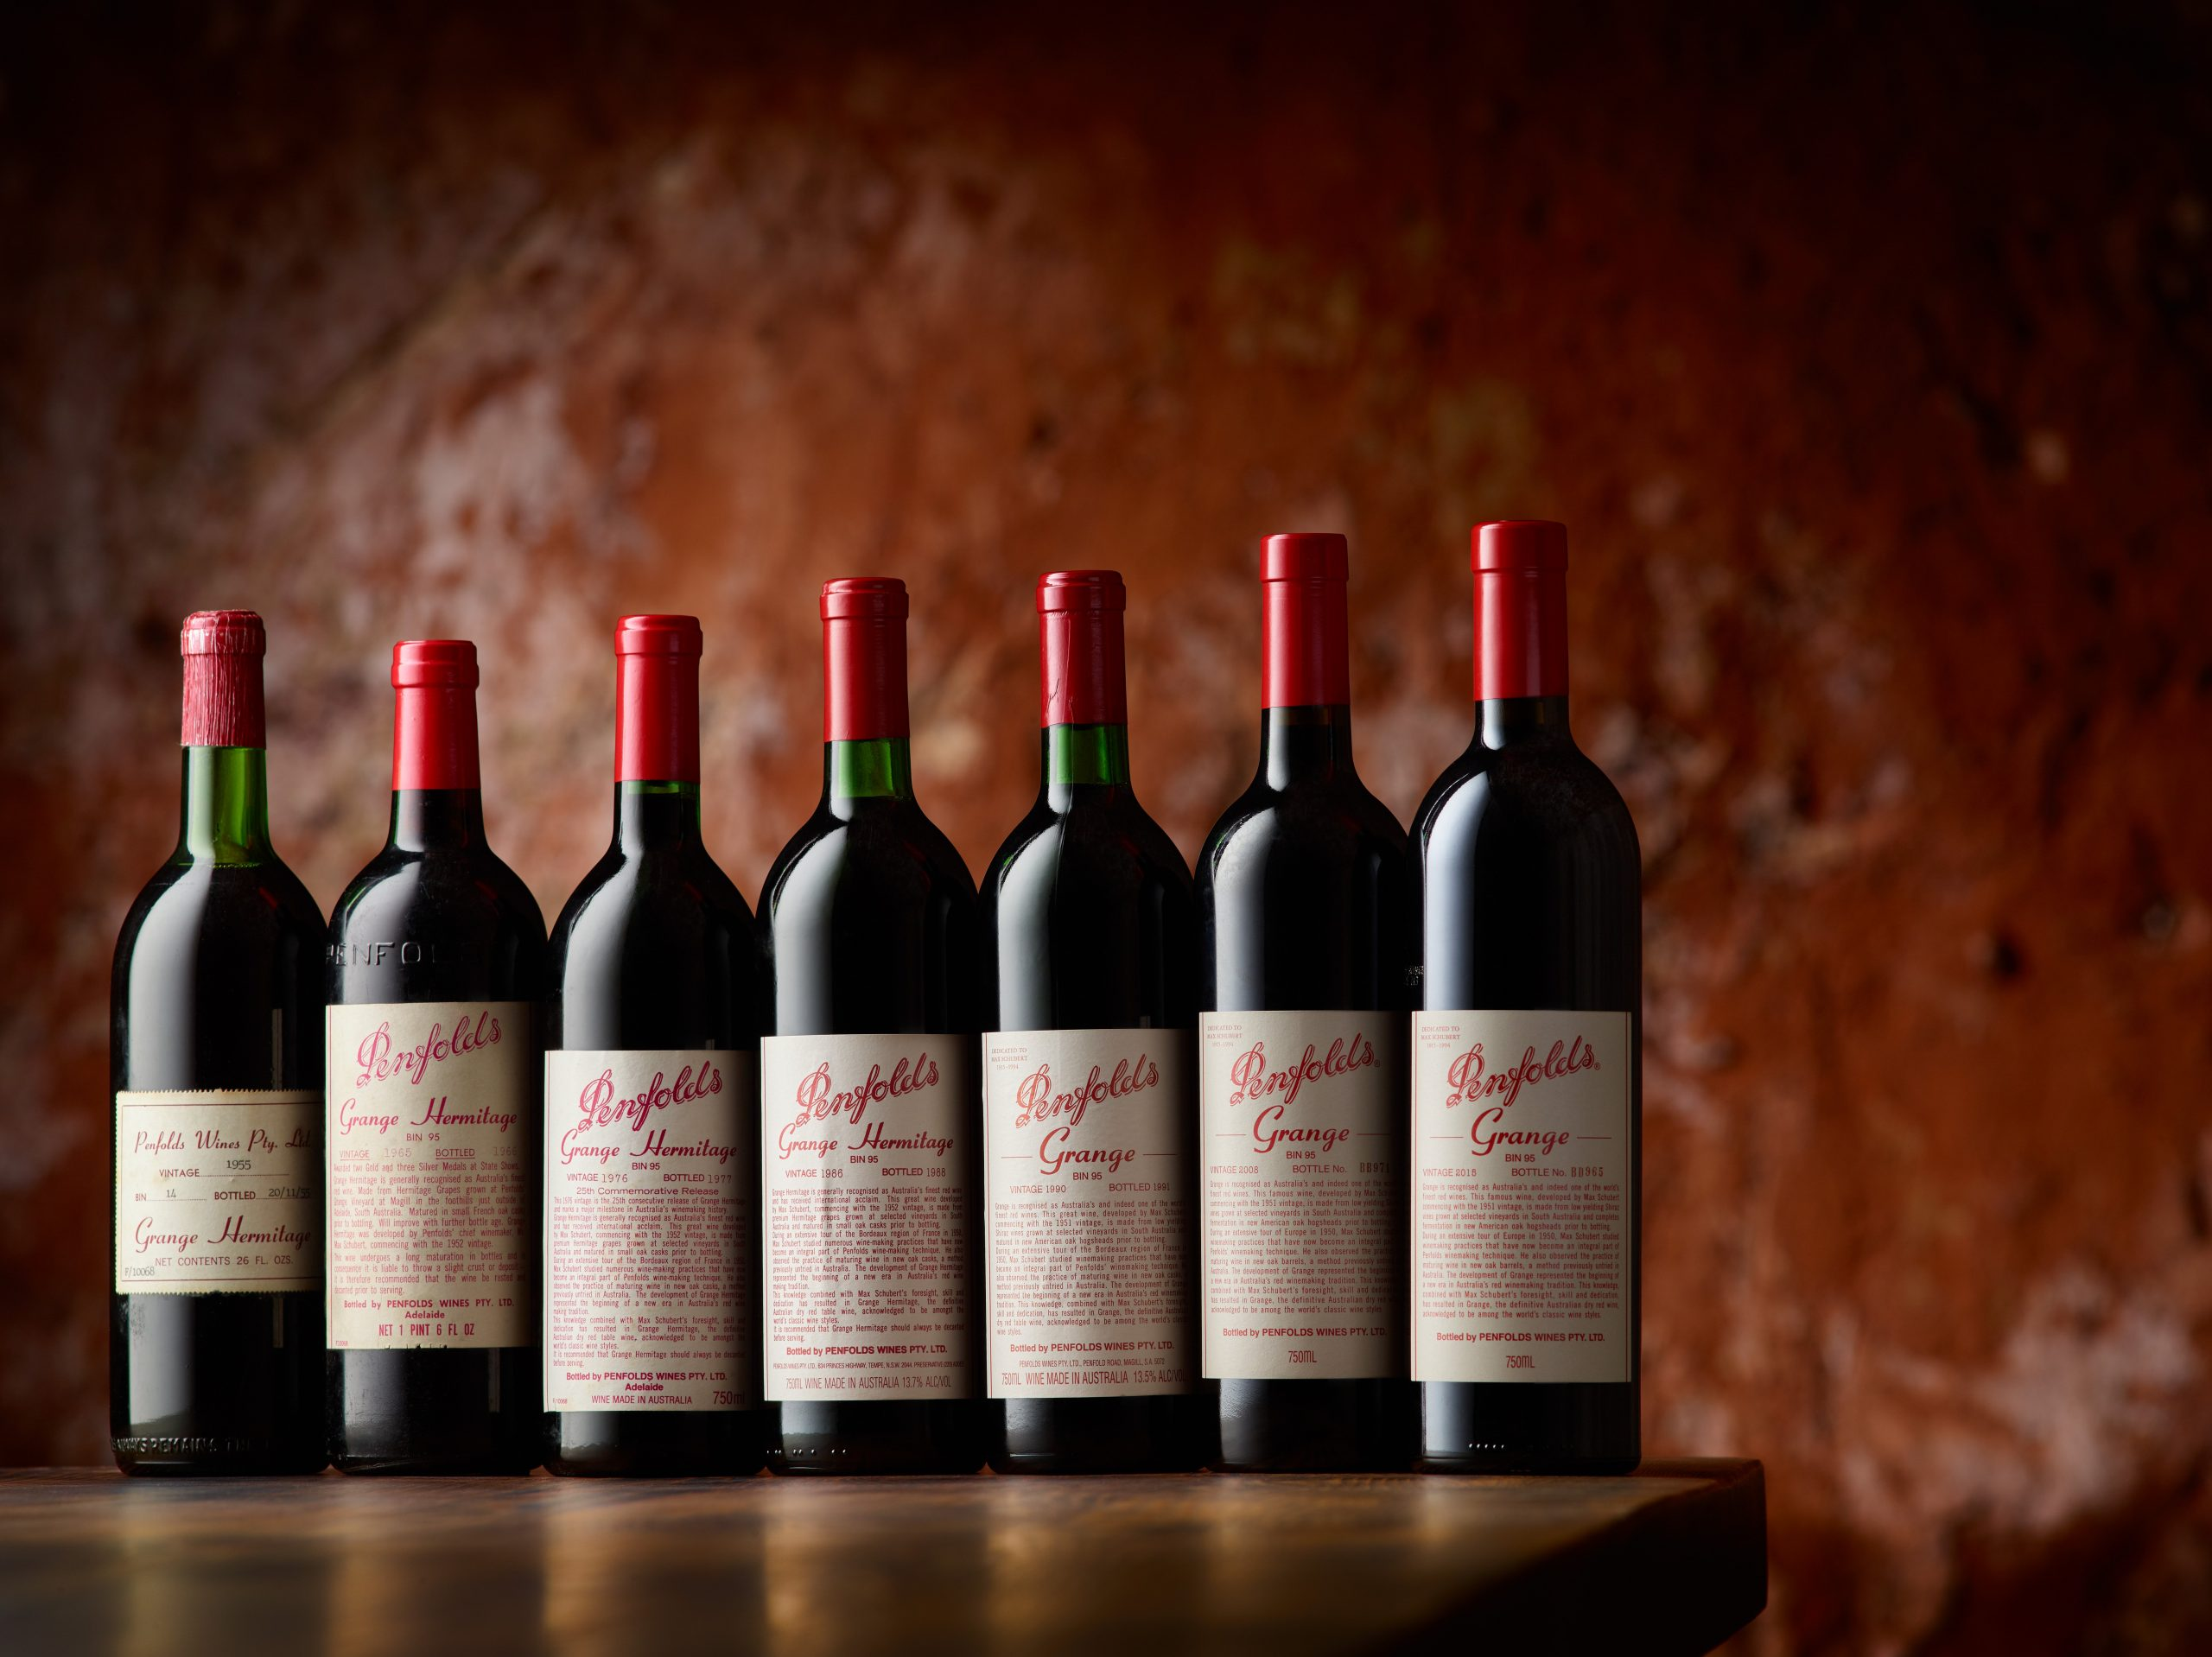 This Bottle Of Penfolds Grange Sold For A Record $103,000 – The Highest Price Ever Paid For An Australian Wine photo